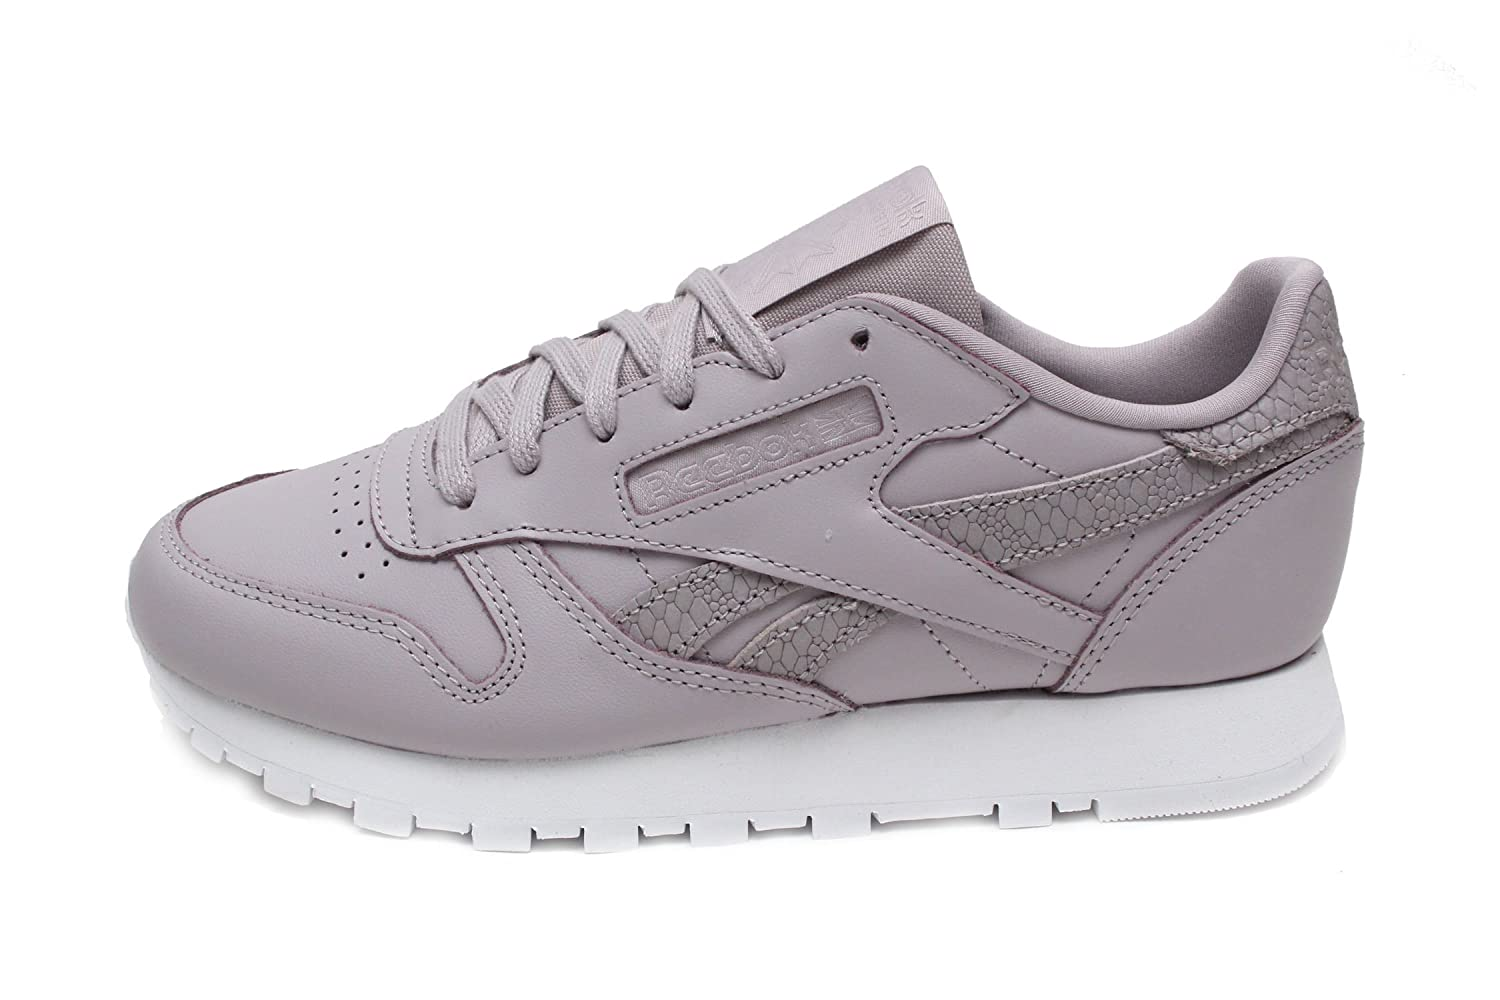 Reebok レディース Cl Lthr Ps Pastel B078VHKQYW 6 B(M) US|Lavender Luck/White Lavender Luck/White 6 B(M) US